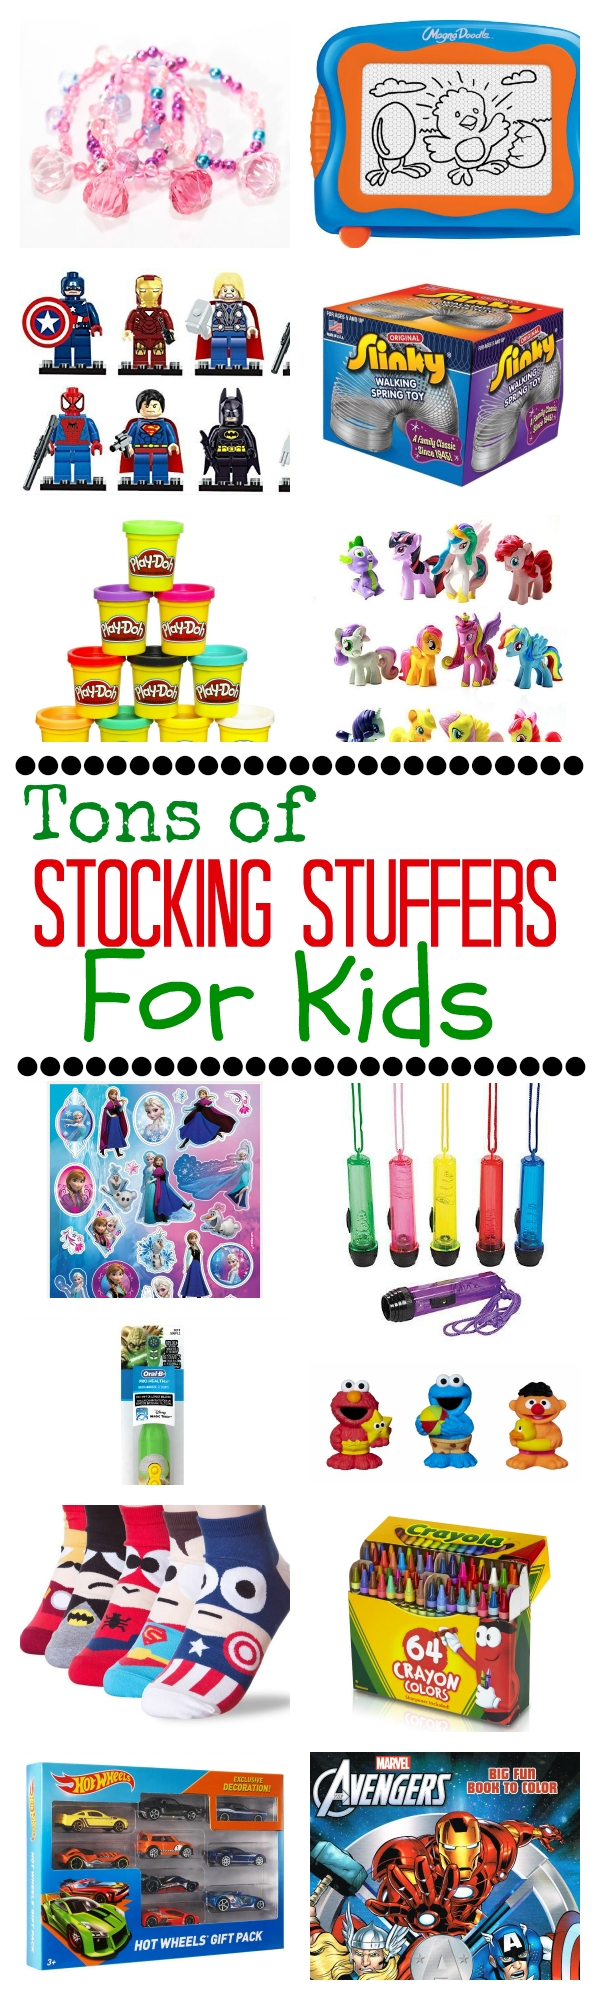 10 Unique Stocking Stuffers Ideas For Kids huge stocking stuffer ideas list crazy little projects 12 2021